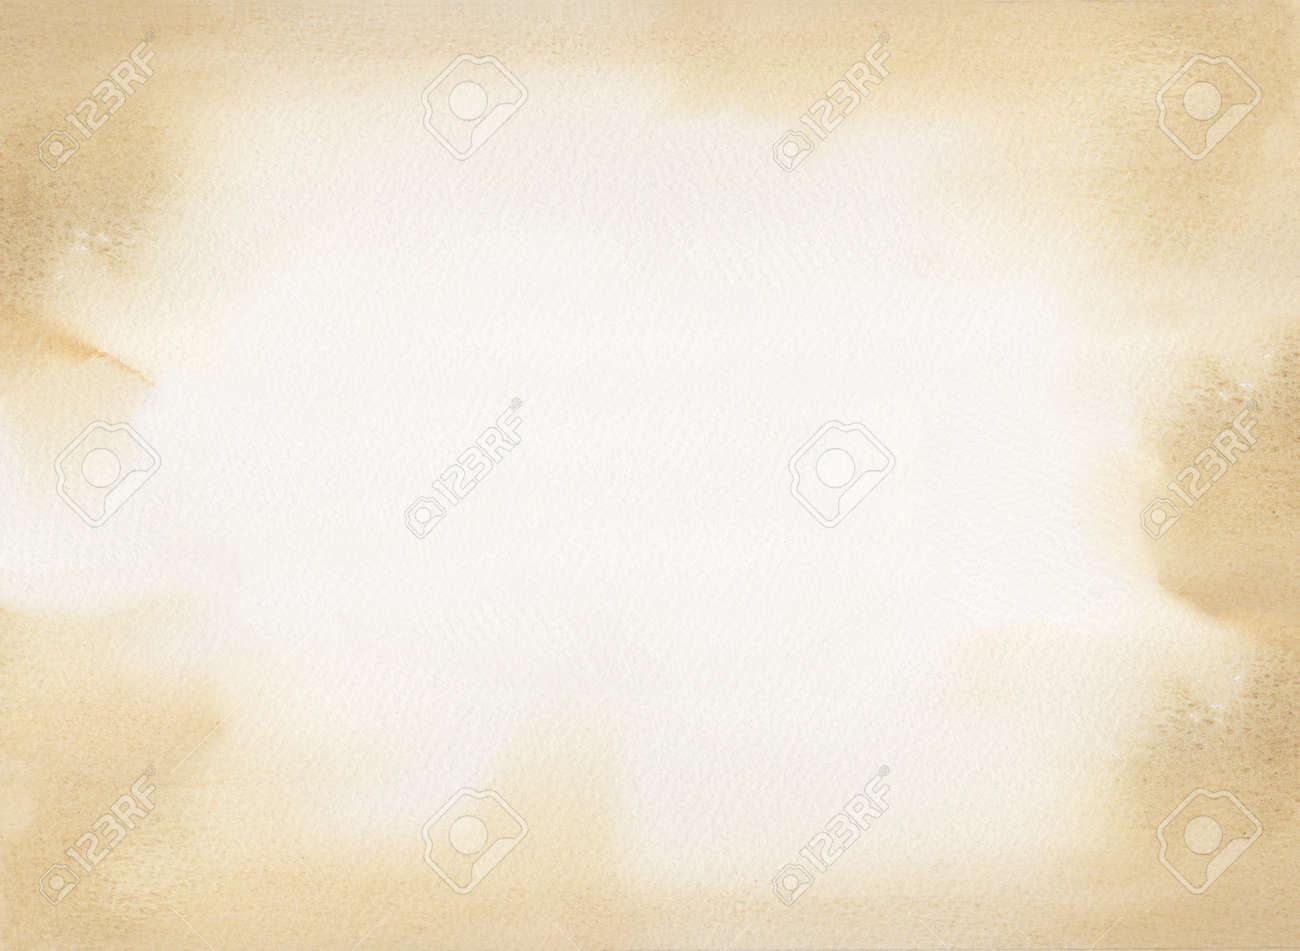 sepia watercolor texture background Stock Photo - 17086341